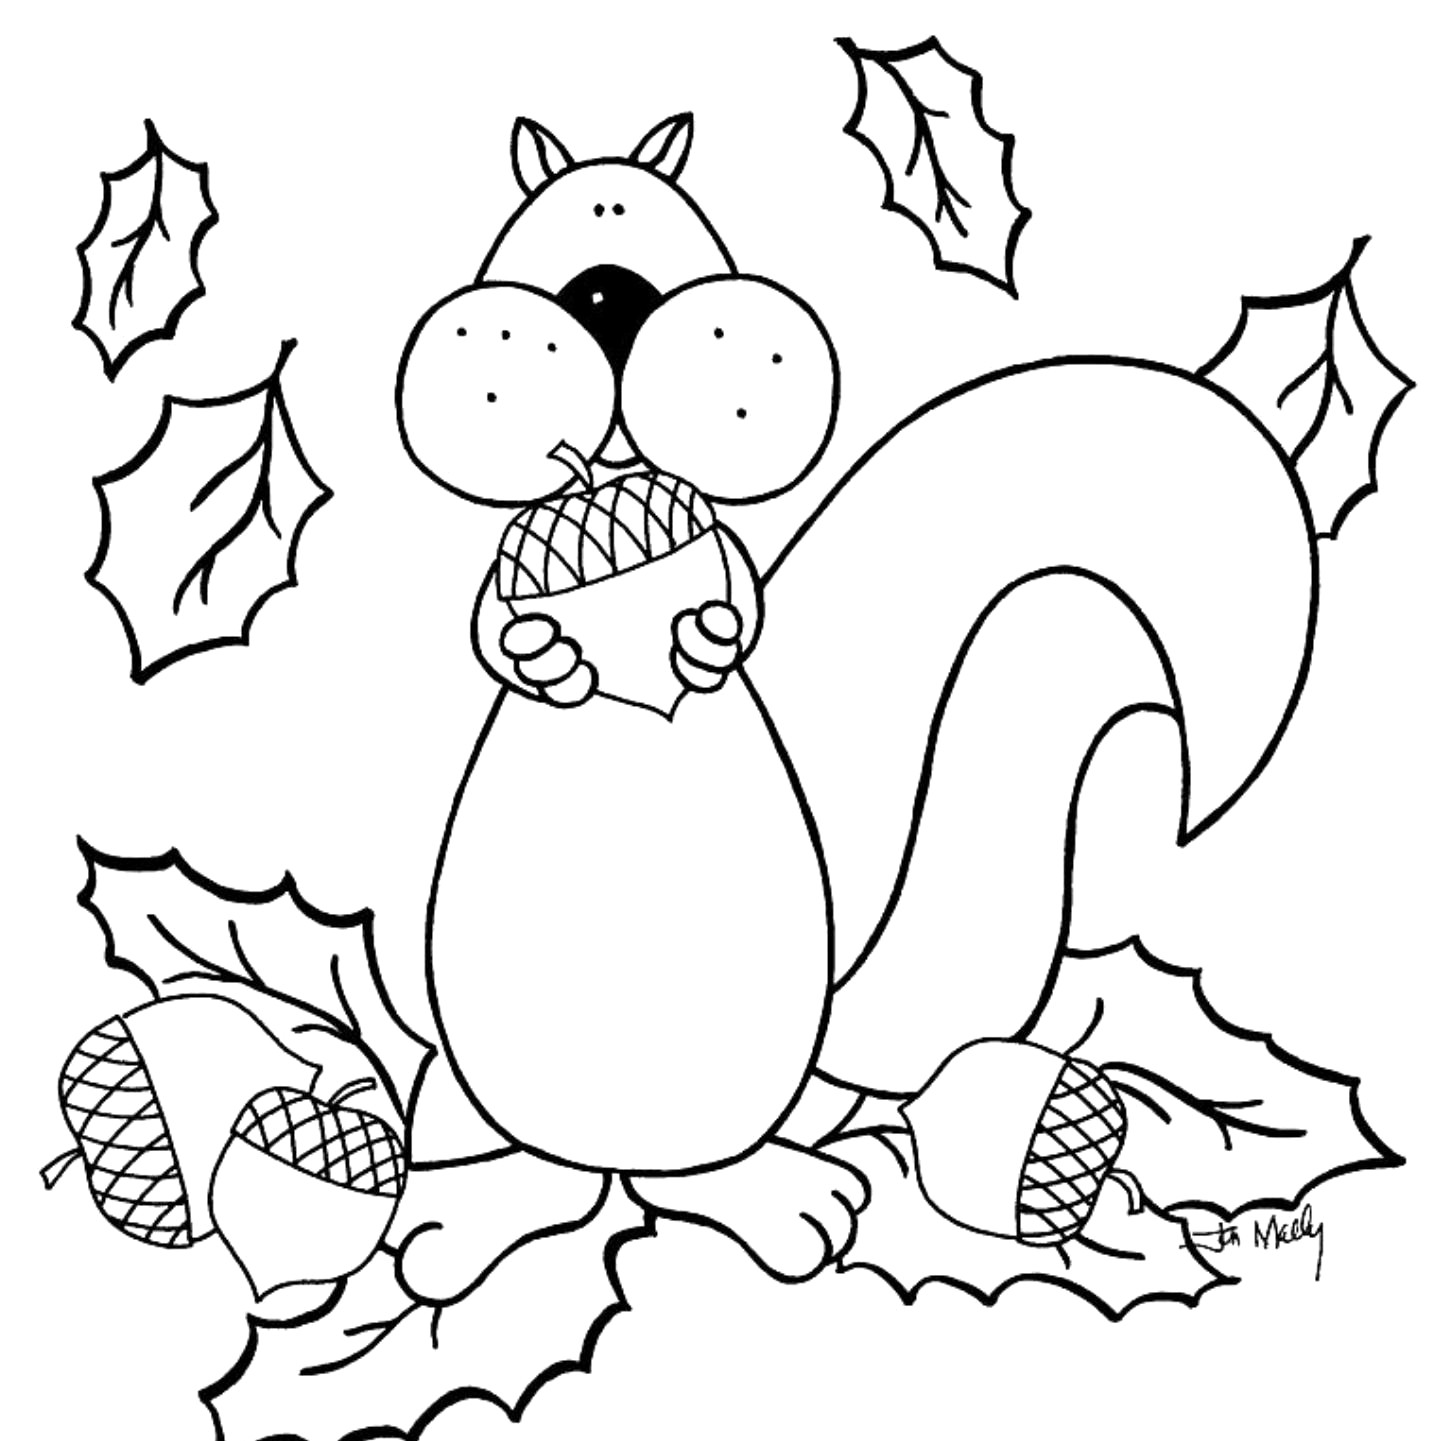 free fall printable coloring pages print download fall coloring pages benefit of printable free coloring fall pages